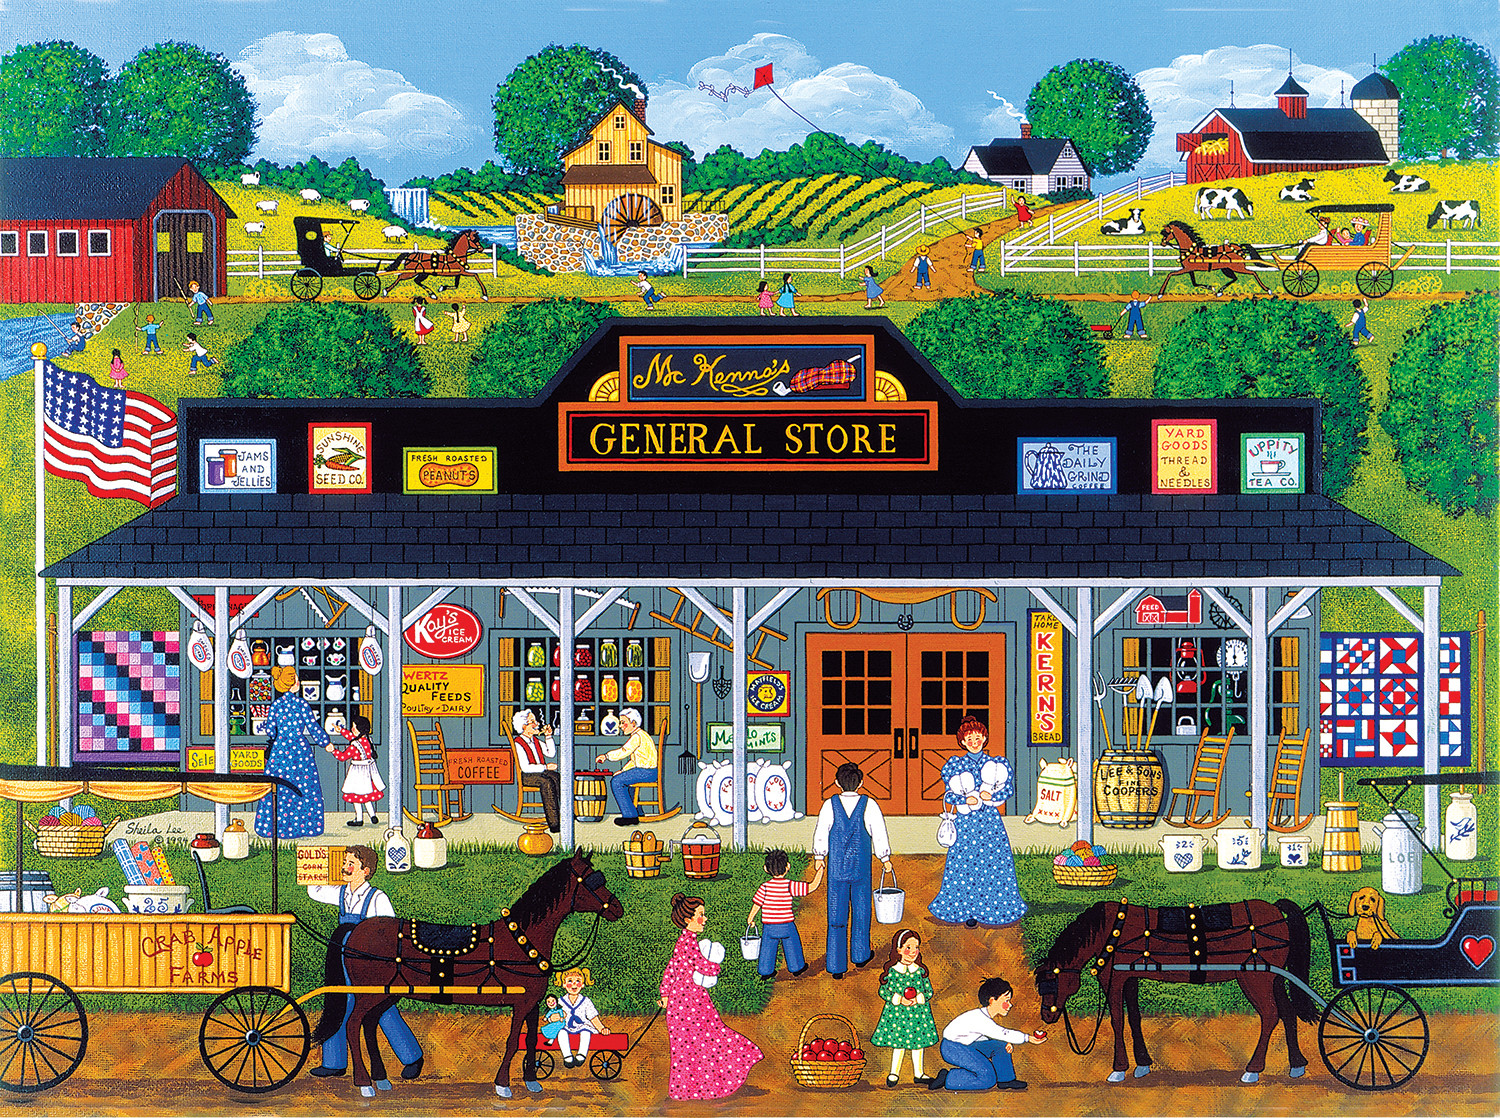 McKenna's General Store - Scratch and Dent Countryside Jigsaw Puzzle